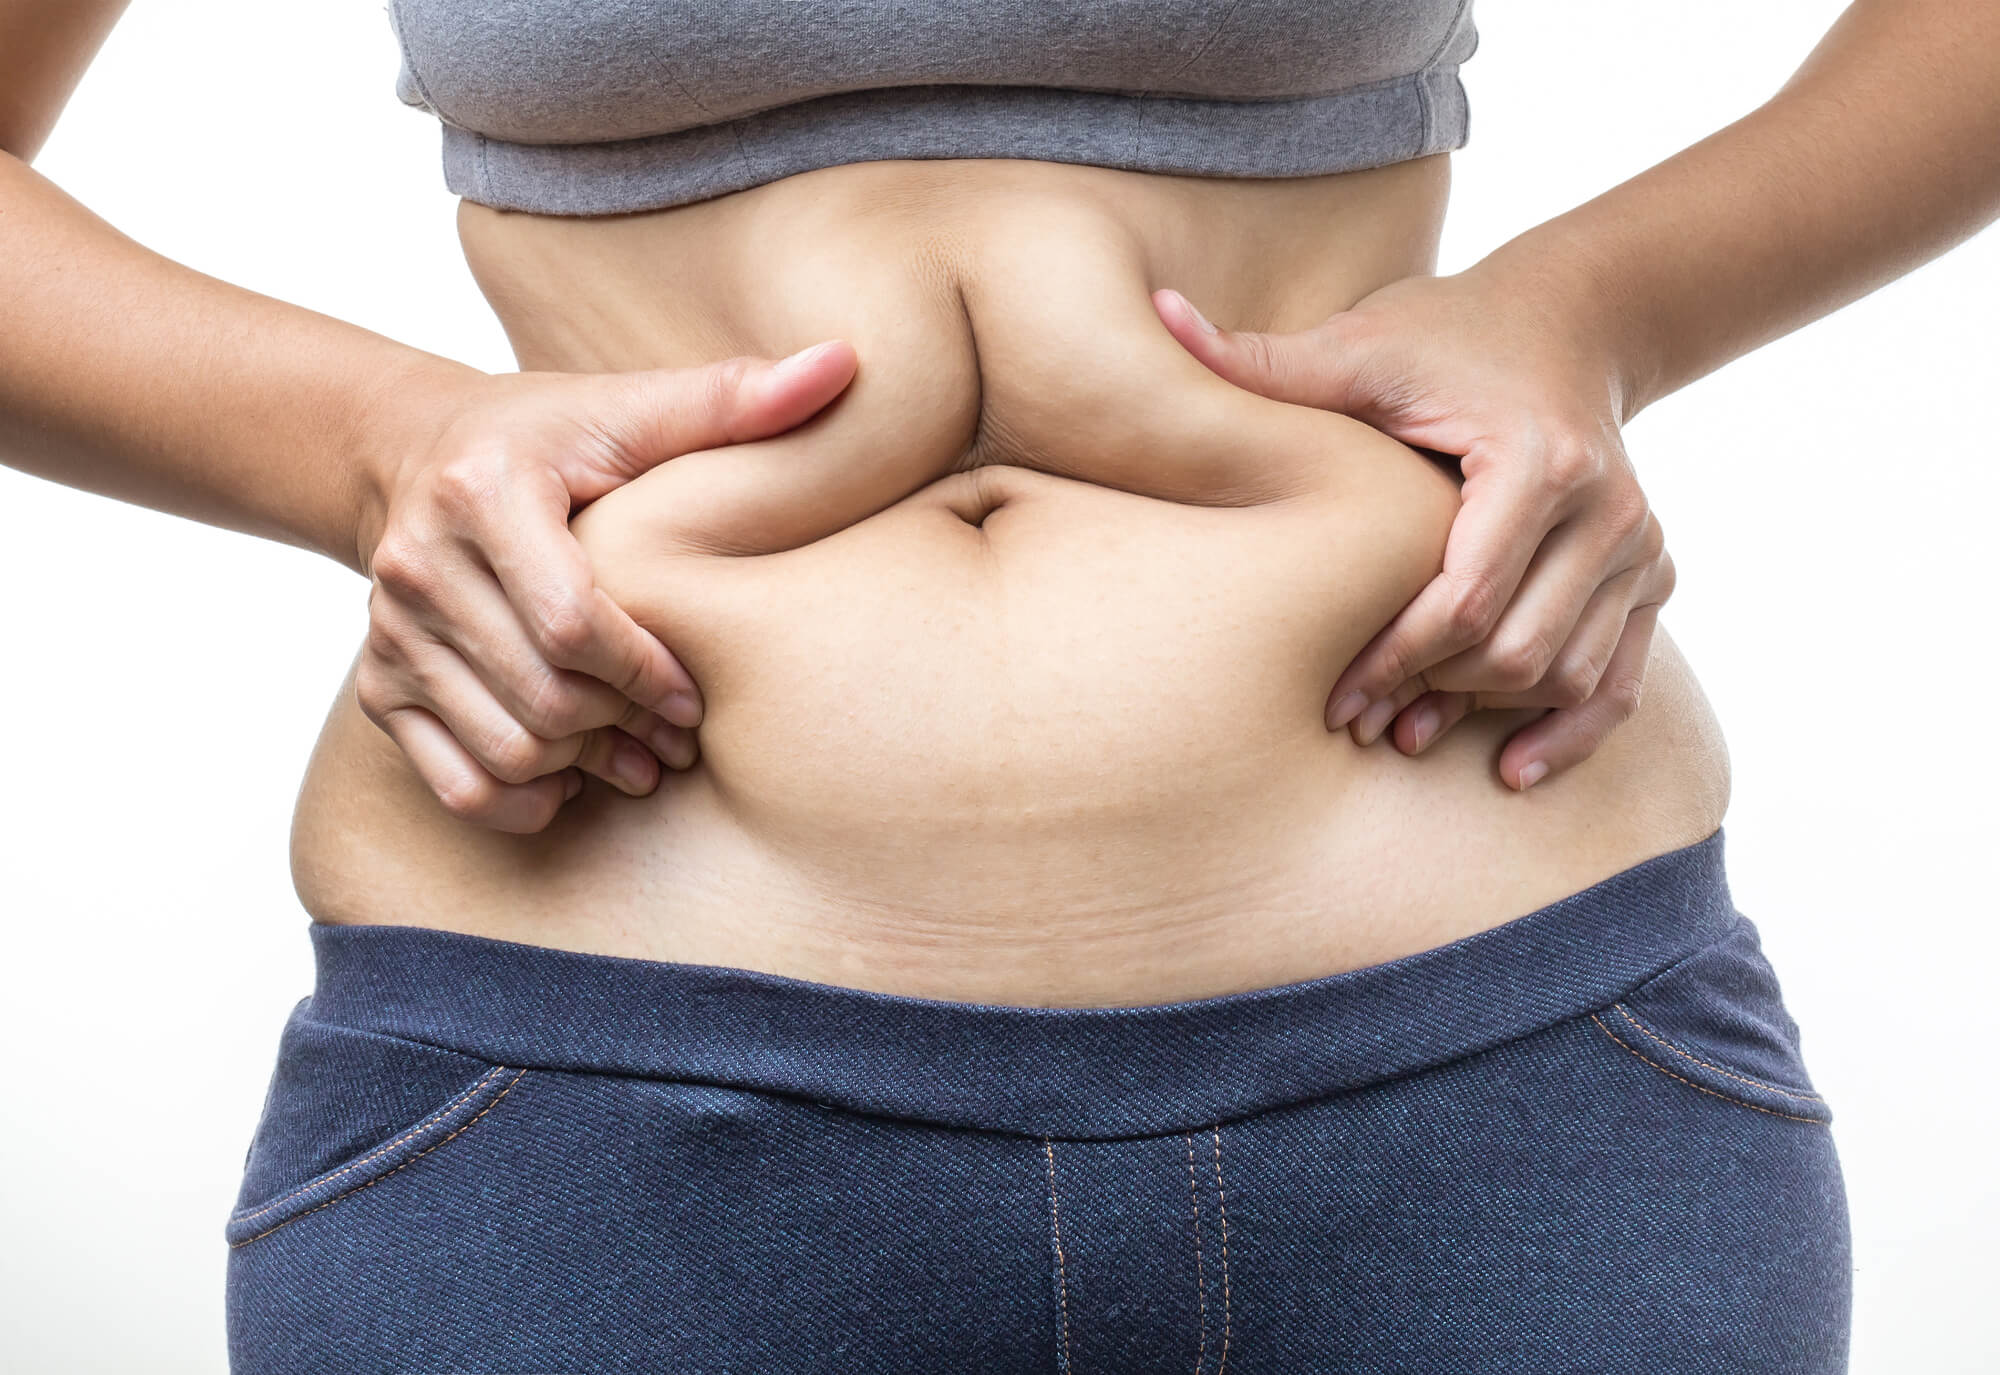 What are the dangers of abdominal fat?